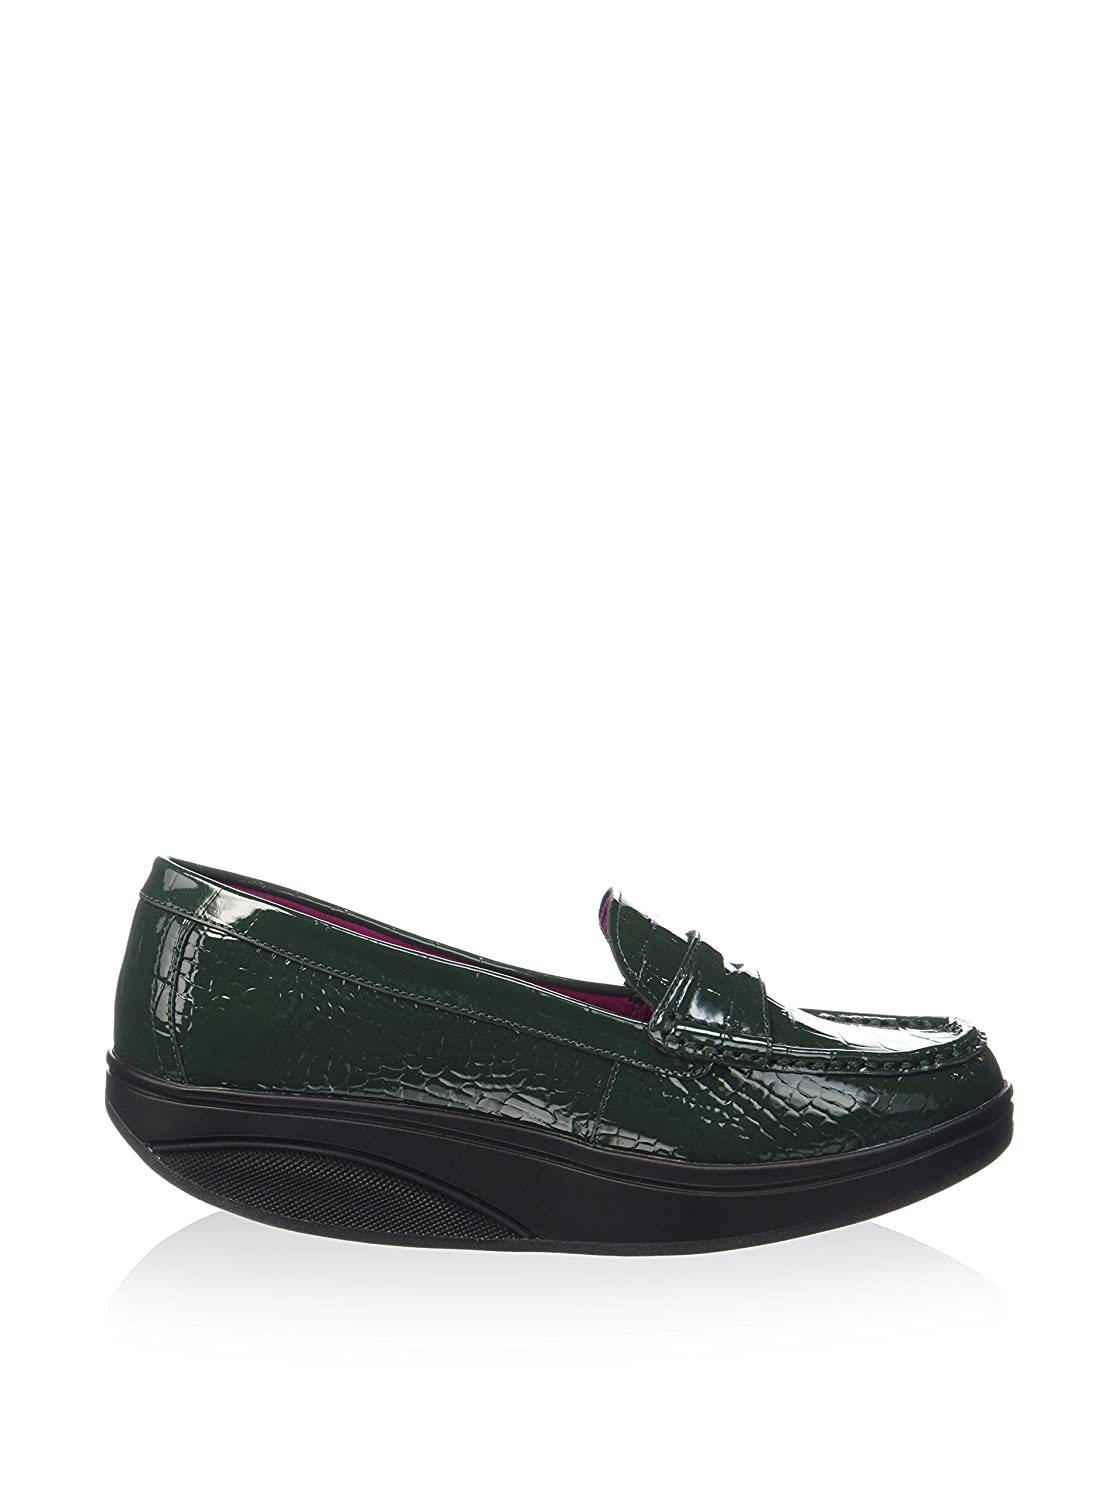 MBT Shani Luxe Penny Loafer, Mocasines Mujer: Amazon.es: Zapatos y complementos